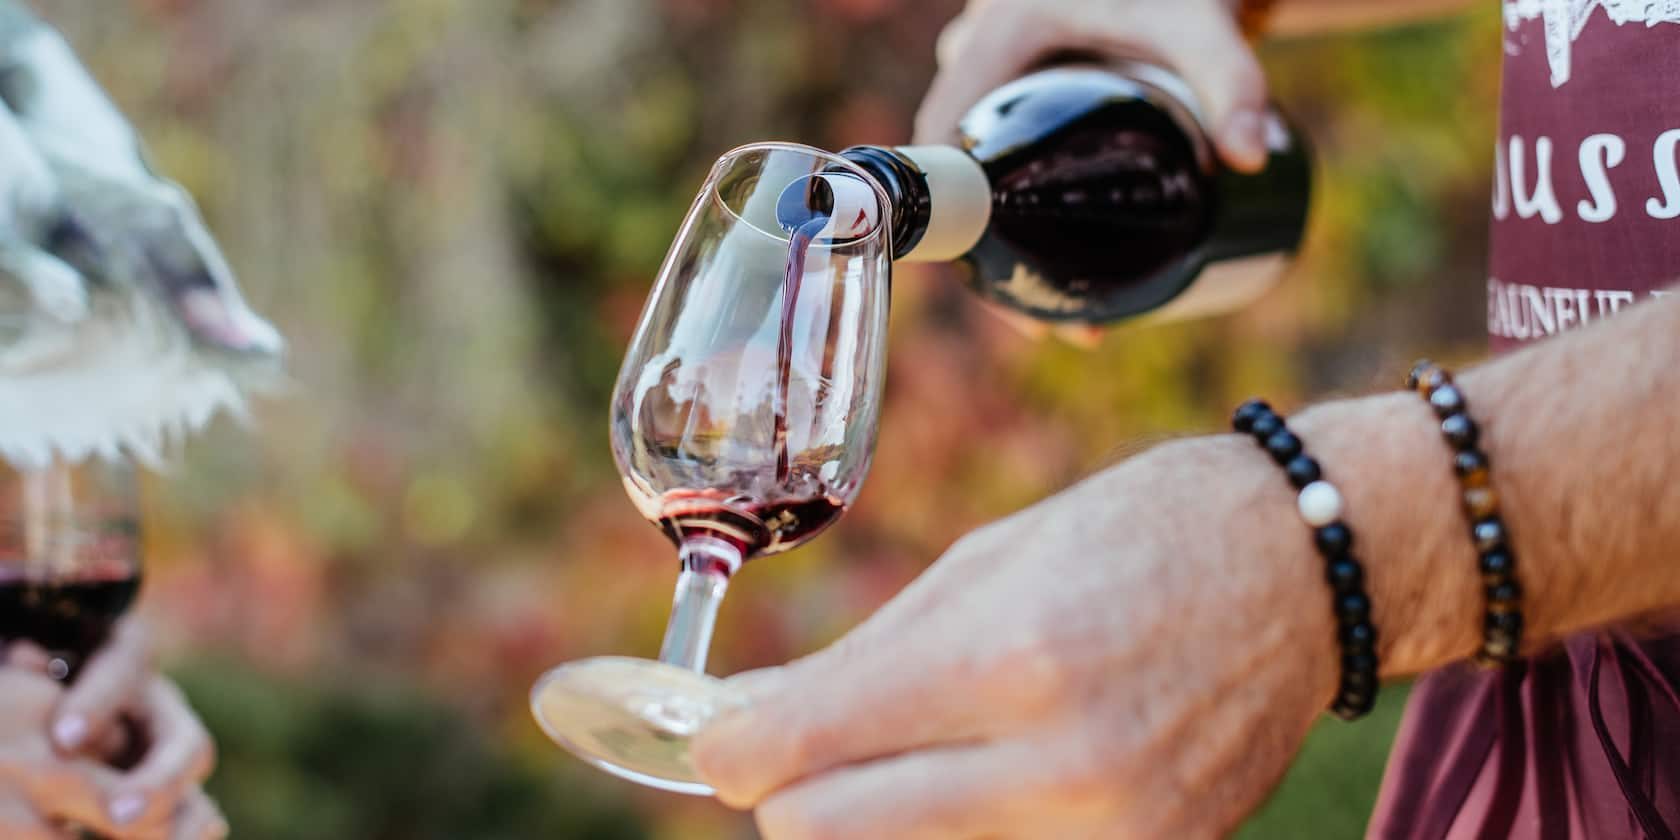 A man wearing beaded bracelets pours a glass of wine from a wine bottle